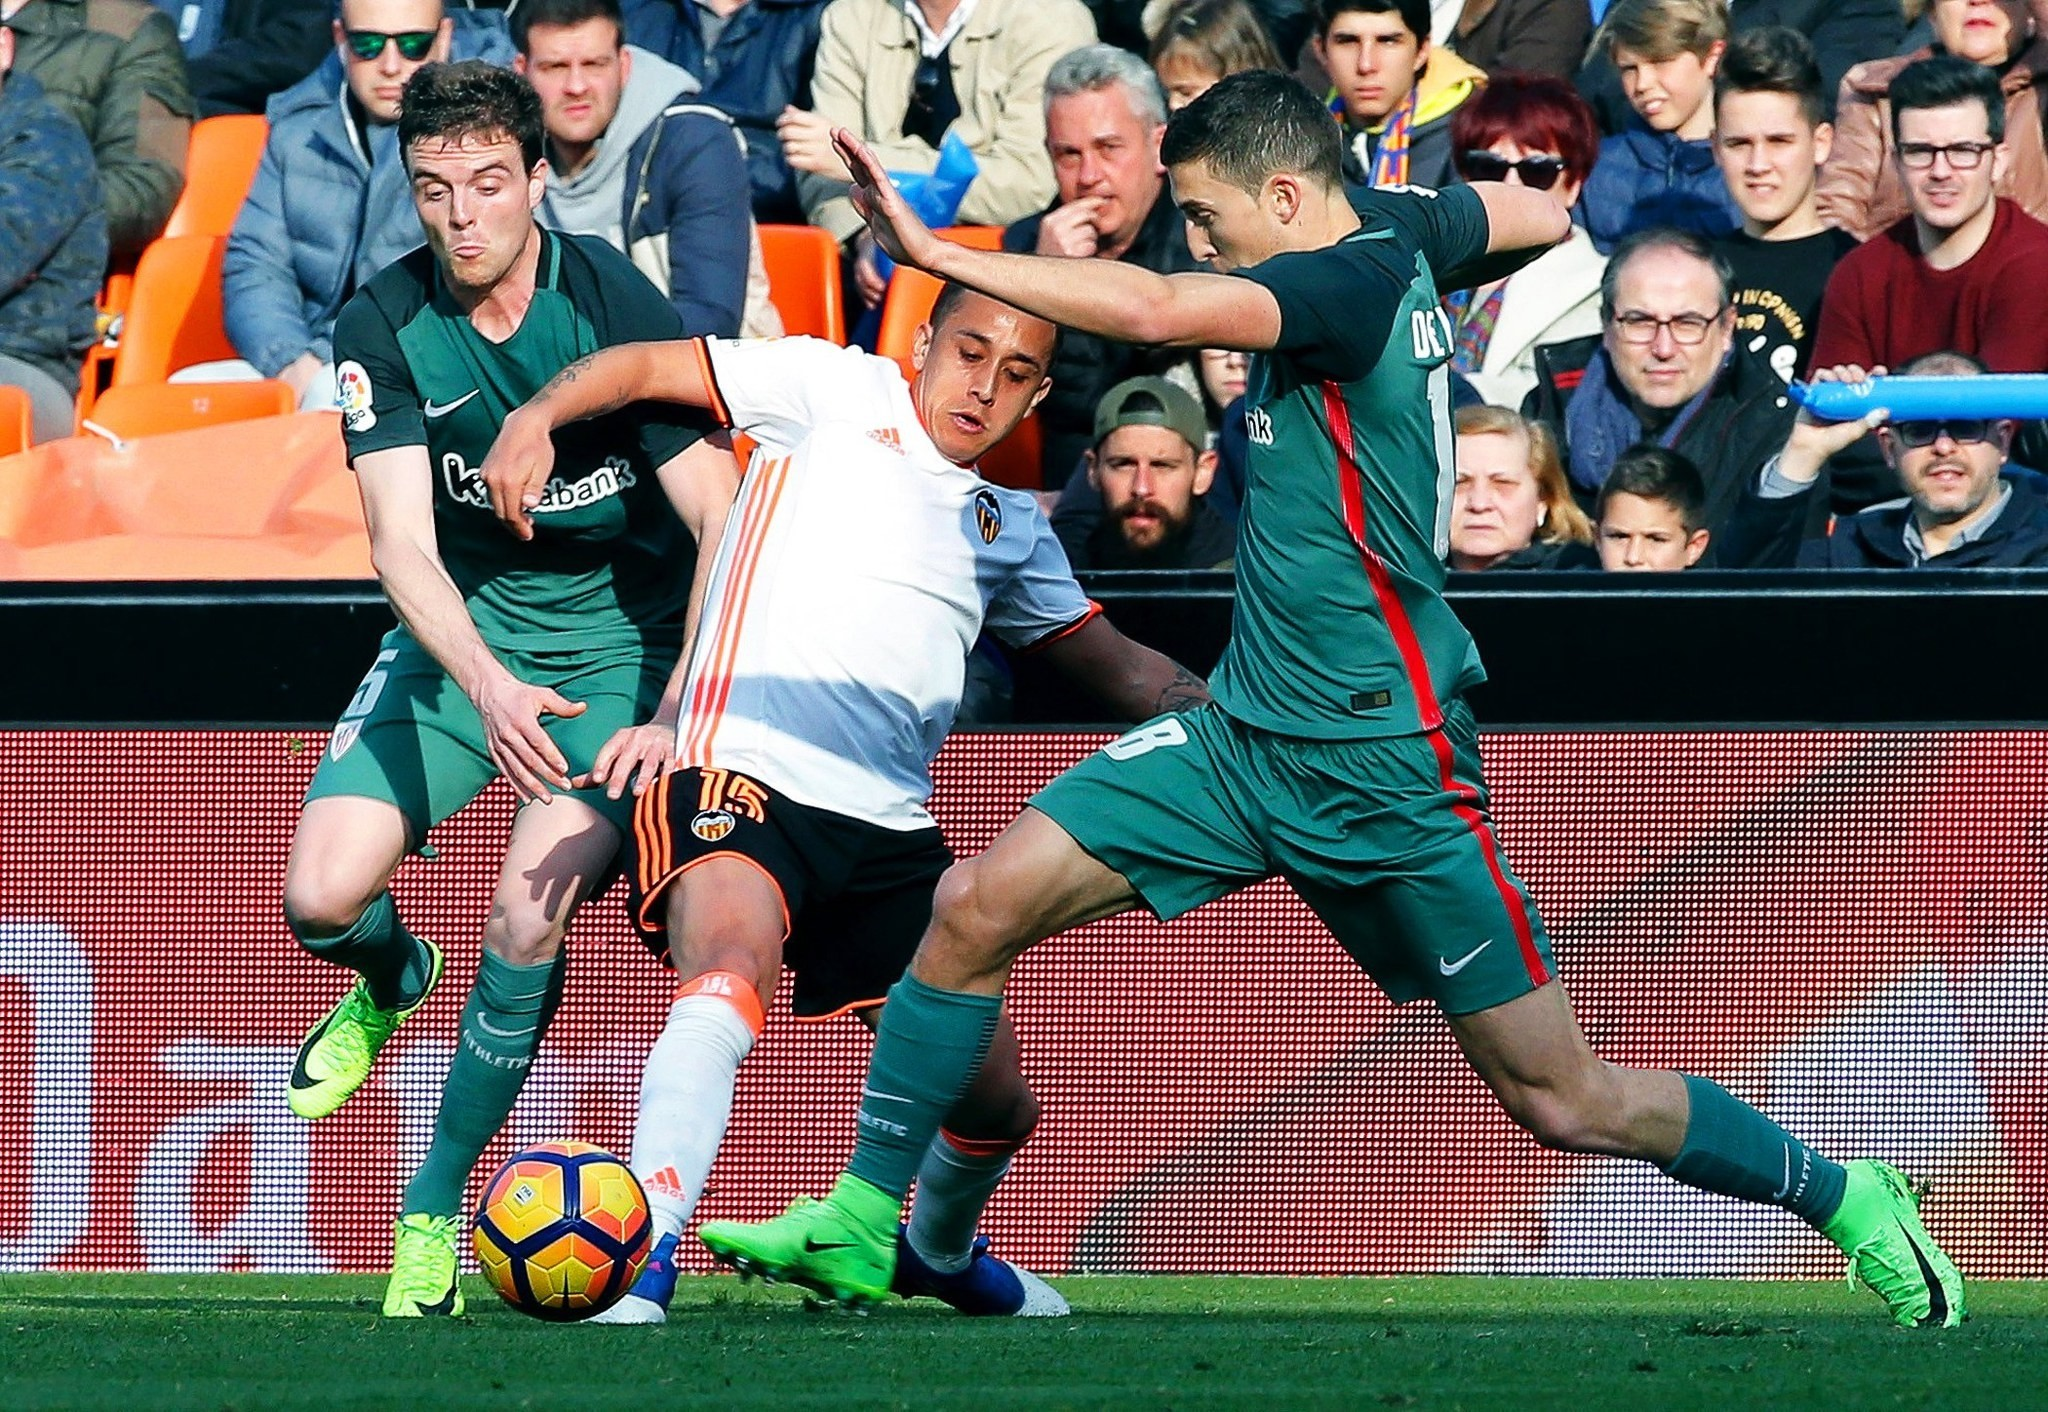 Valencia's Orellana (C) in action against Athletic Bilbao players Eraso (L) and Muniain (R) during the Spanish Primera Division soccer match between Valencia CF and Athletic Bilbao at the Mestalla stadium in Valencia, 19 February 2017. (EPA Photo)